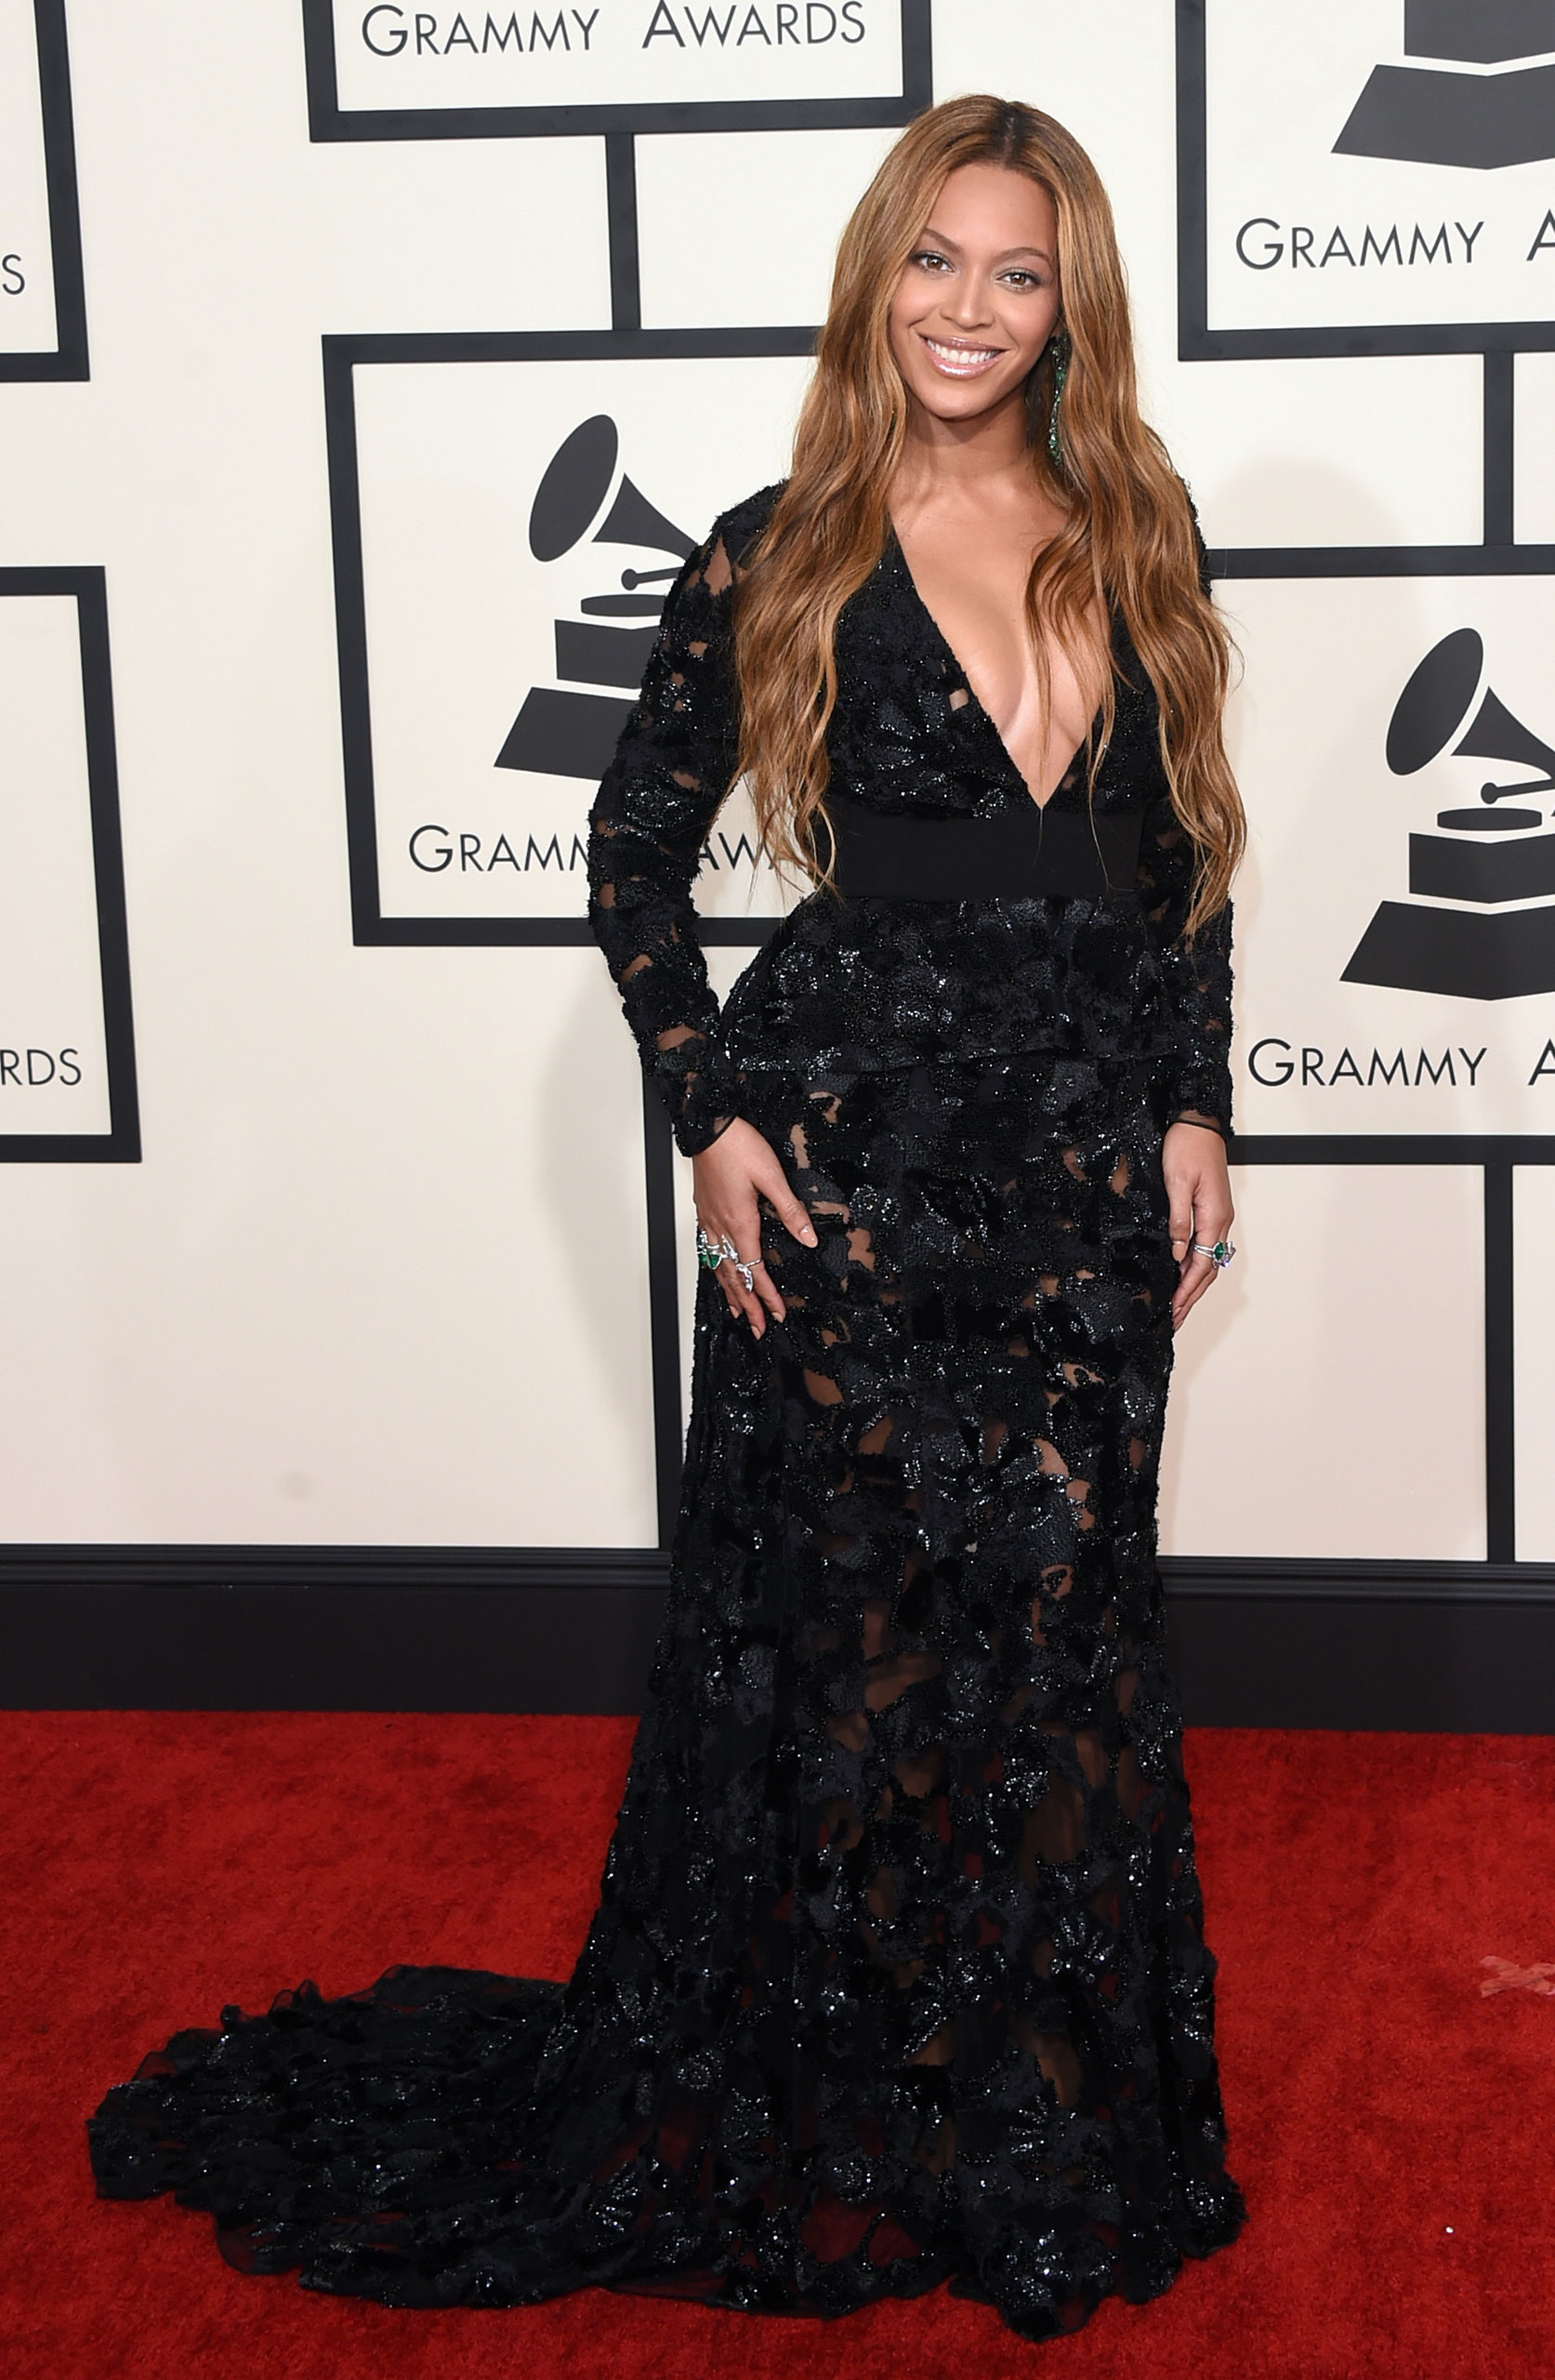 Beyonce attends the 57th Annual Grammy Awards at the Staples Center on Feb. 8, 2015 in Los Angeles, Calif.